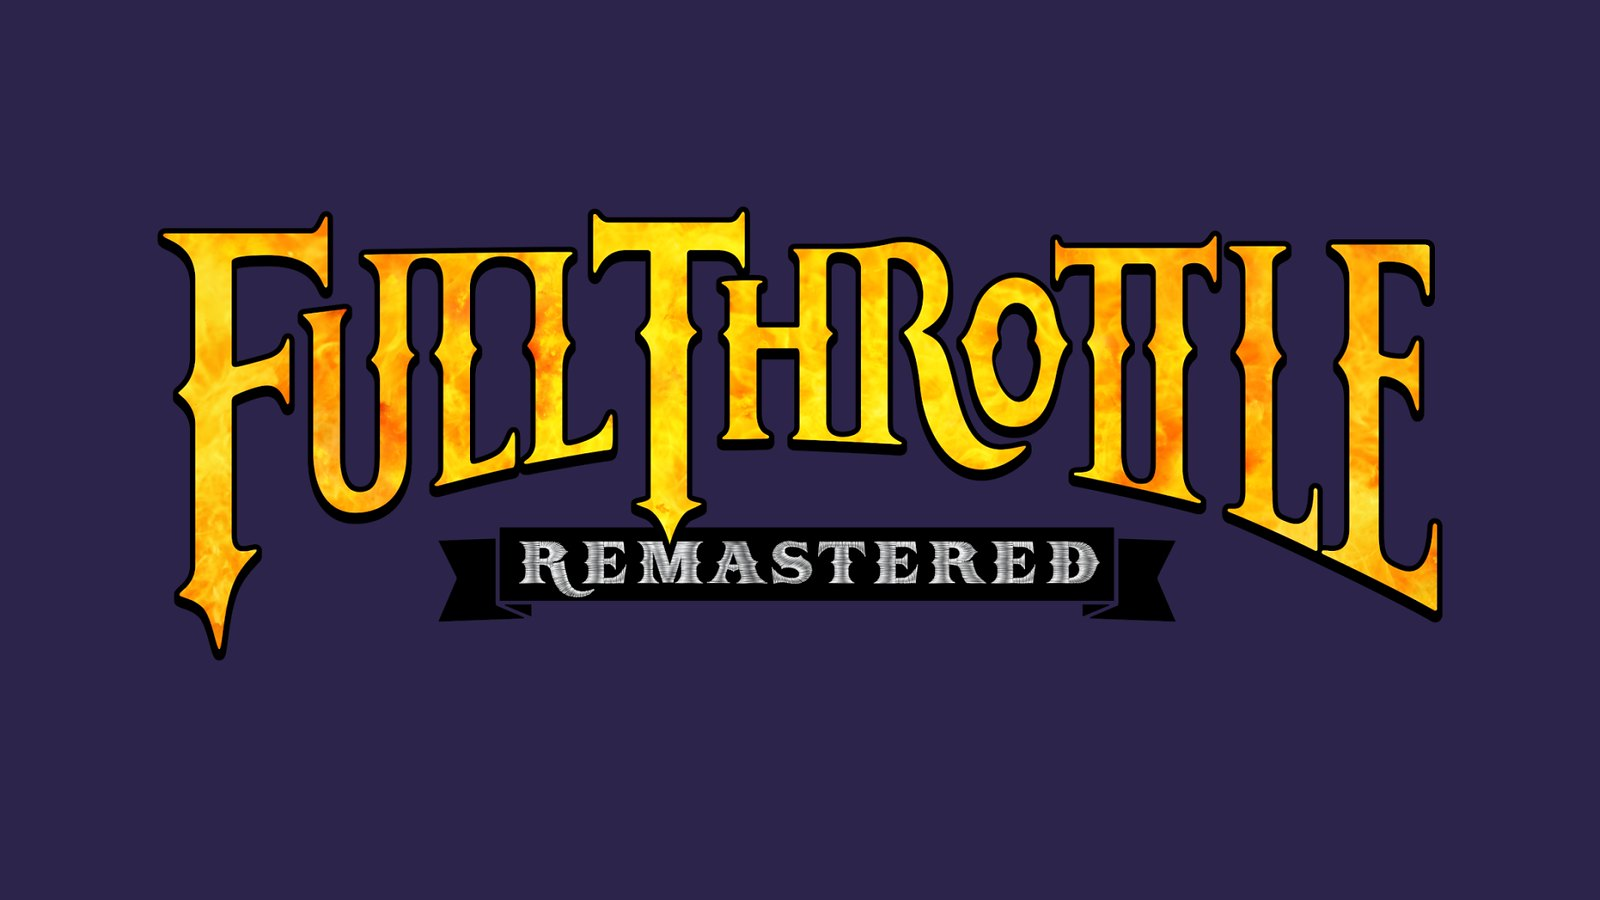 Full Throttle Remastered, Image 01